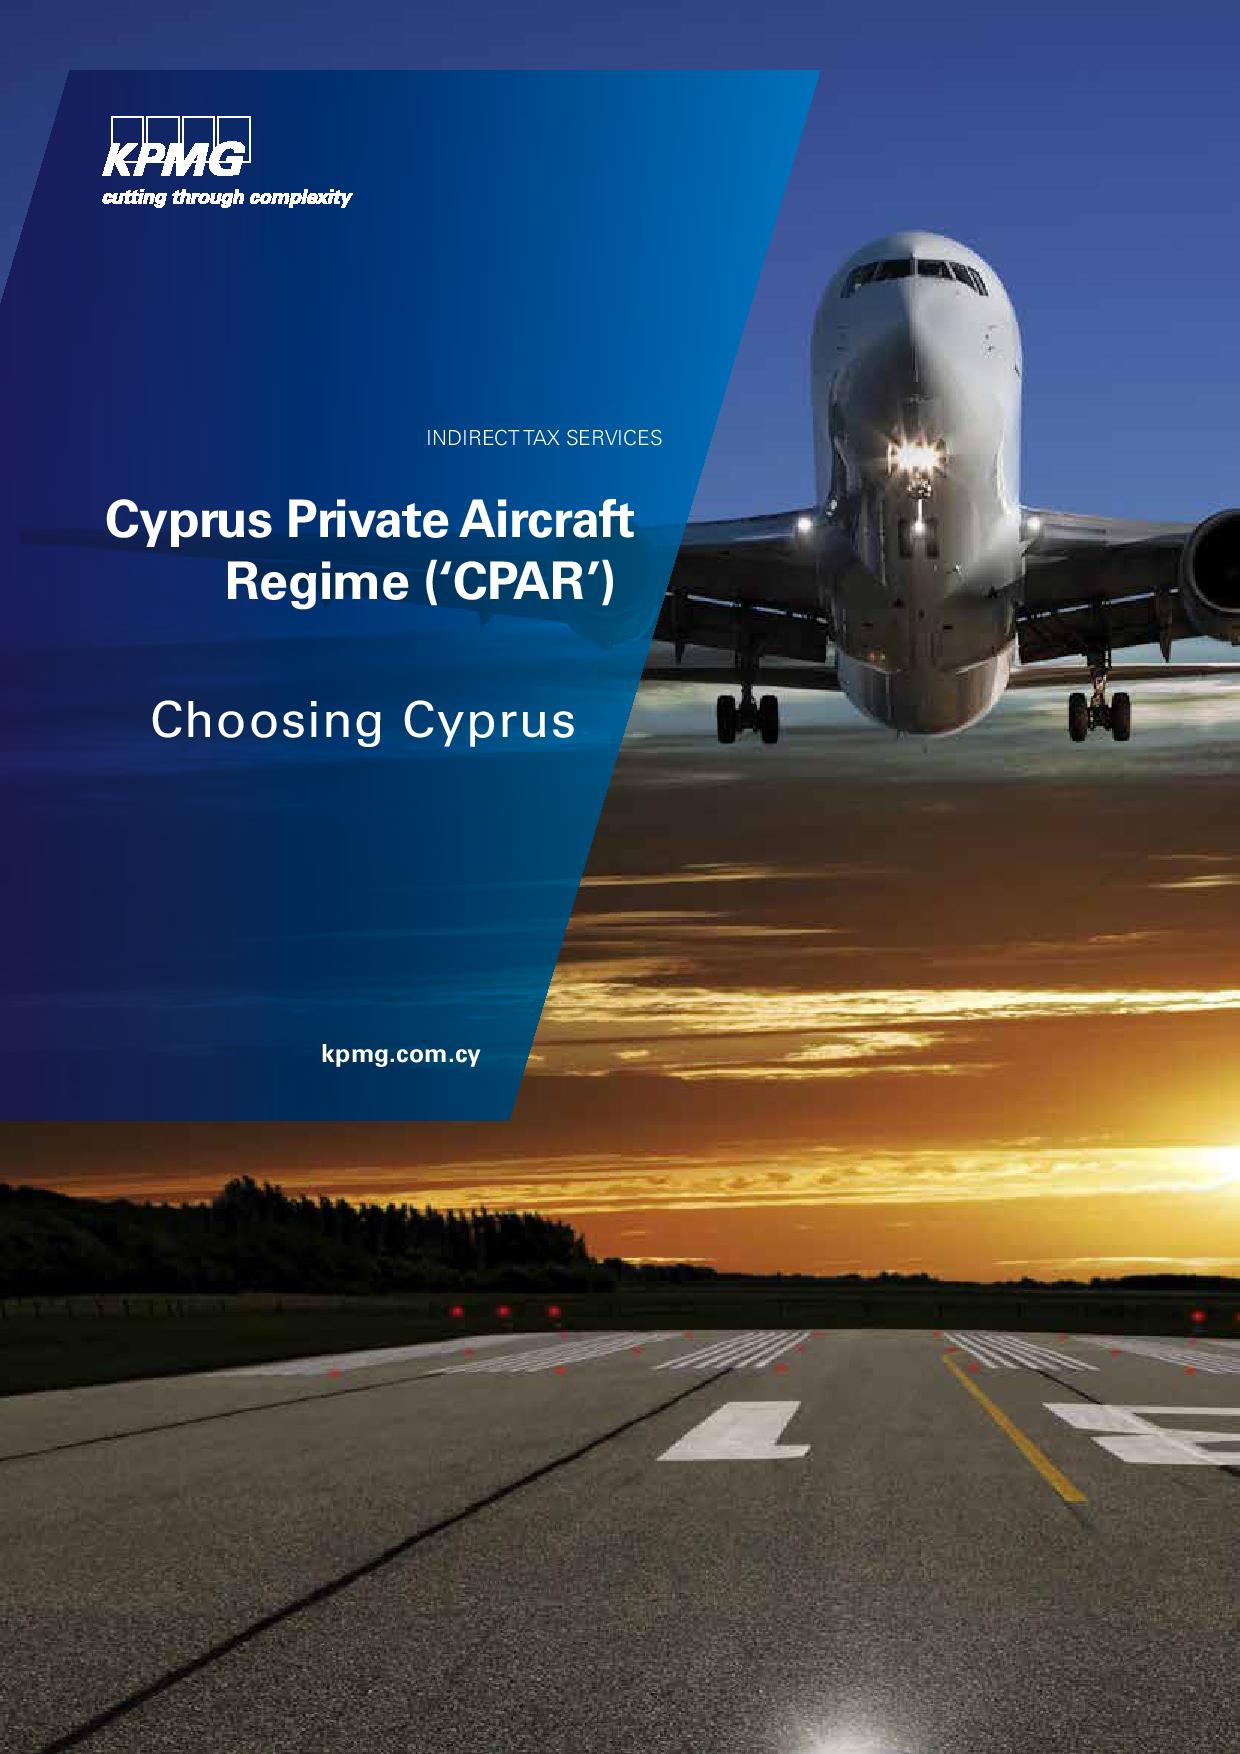 Cyprus Private Aircraft Regime ('CPAR')